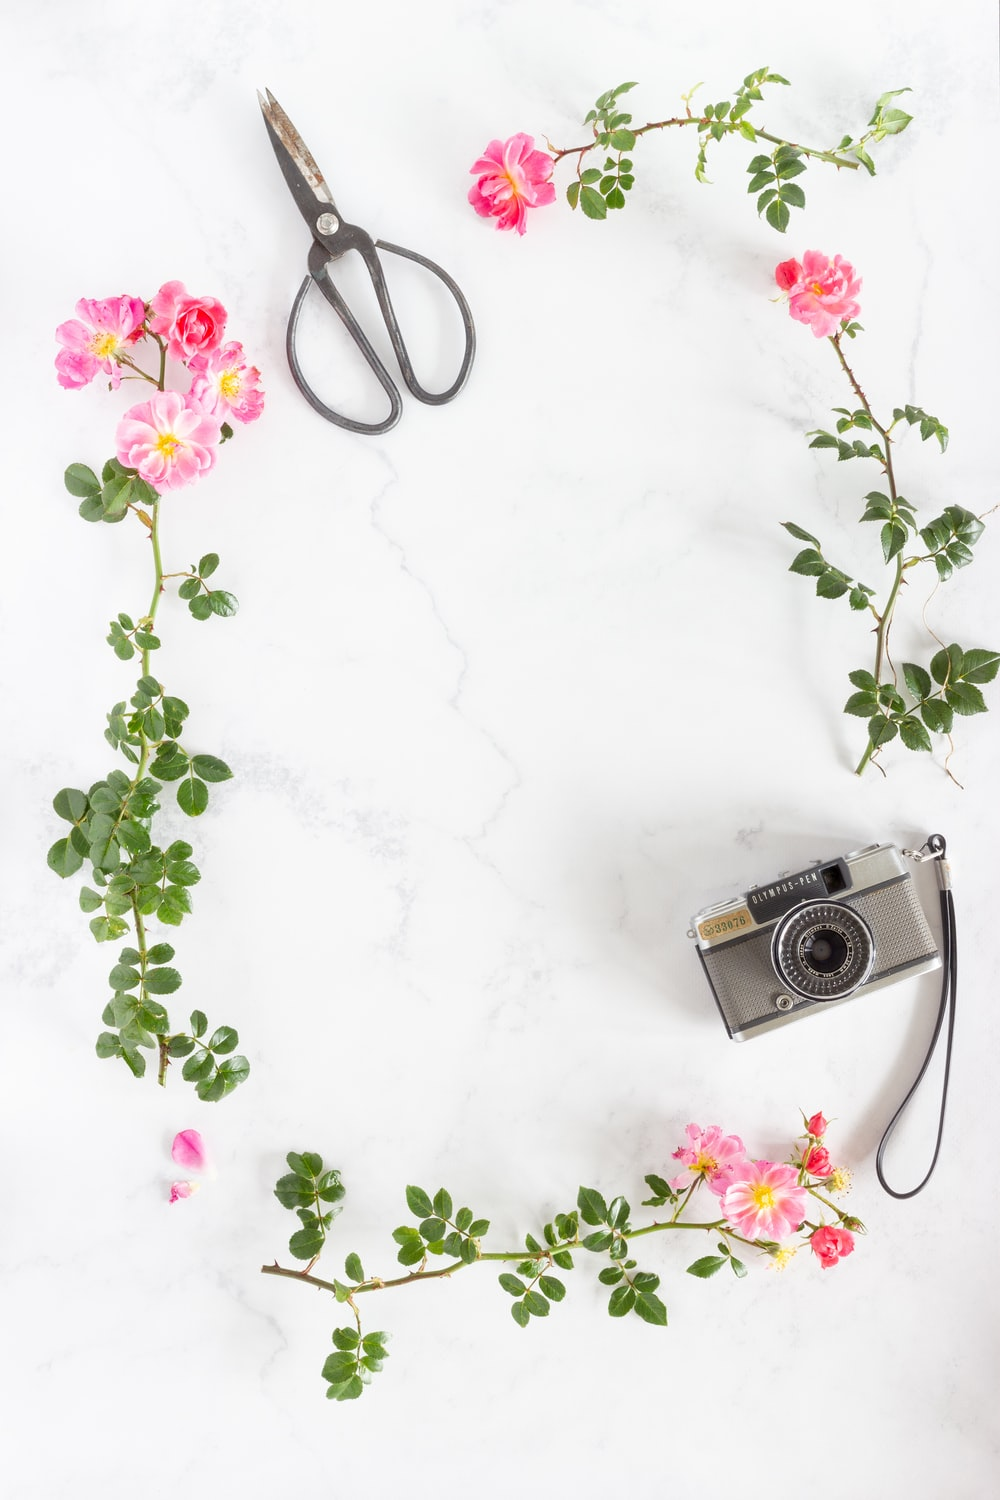 silver and black camera on white floral textile